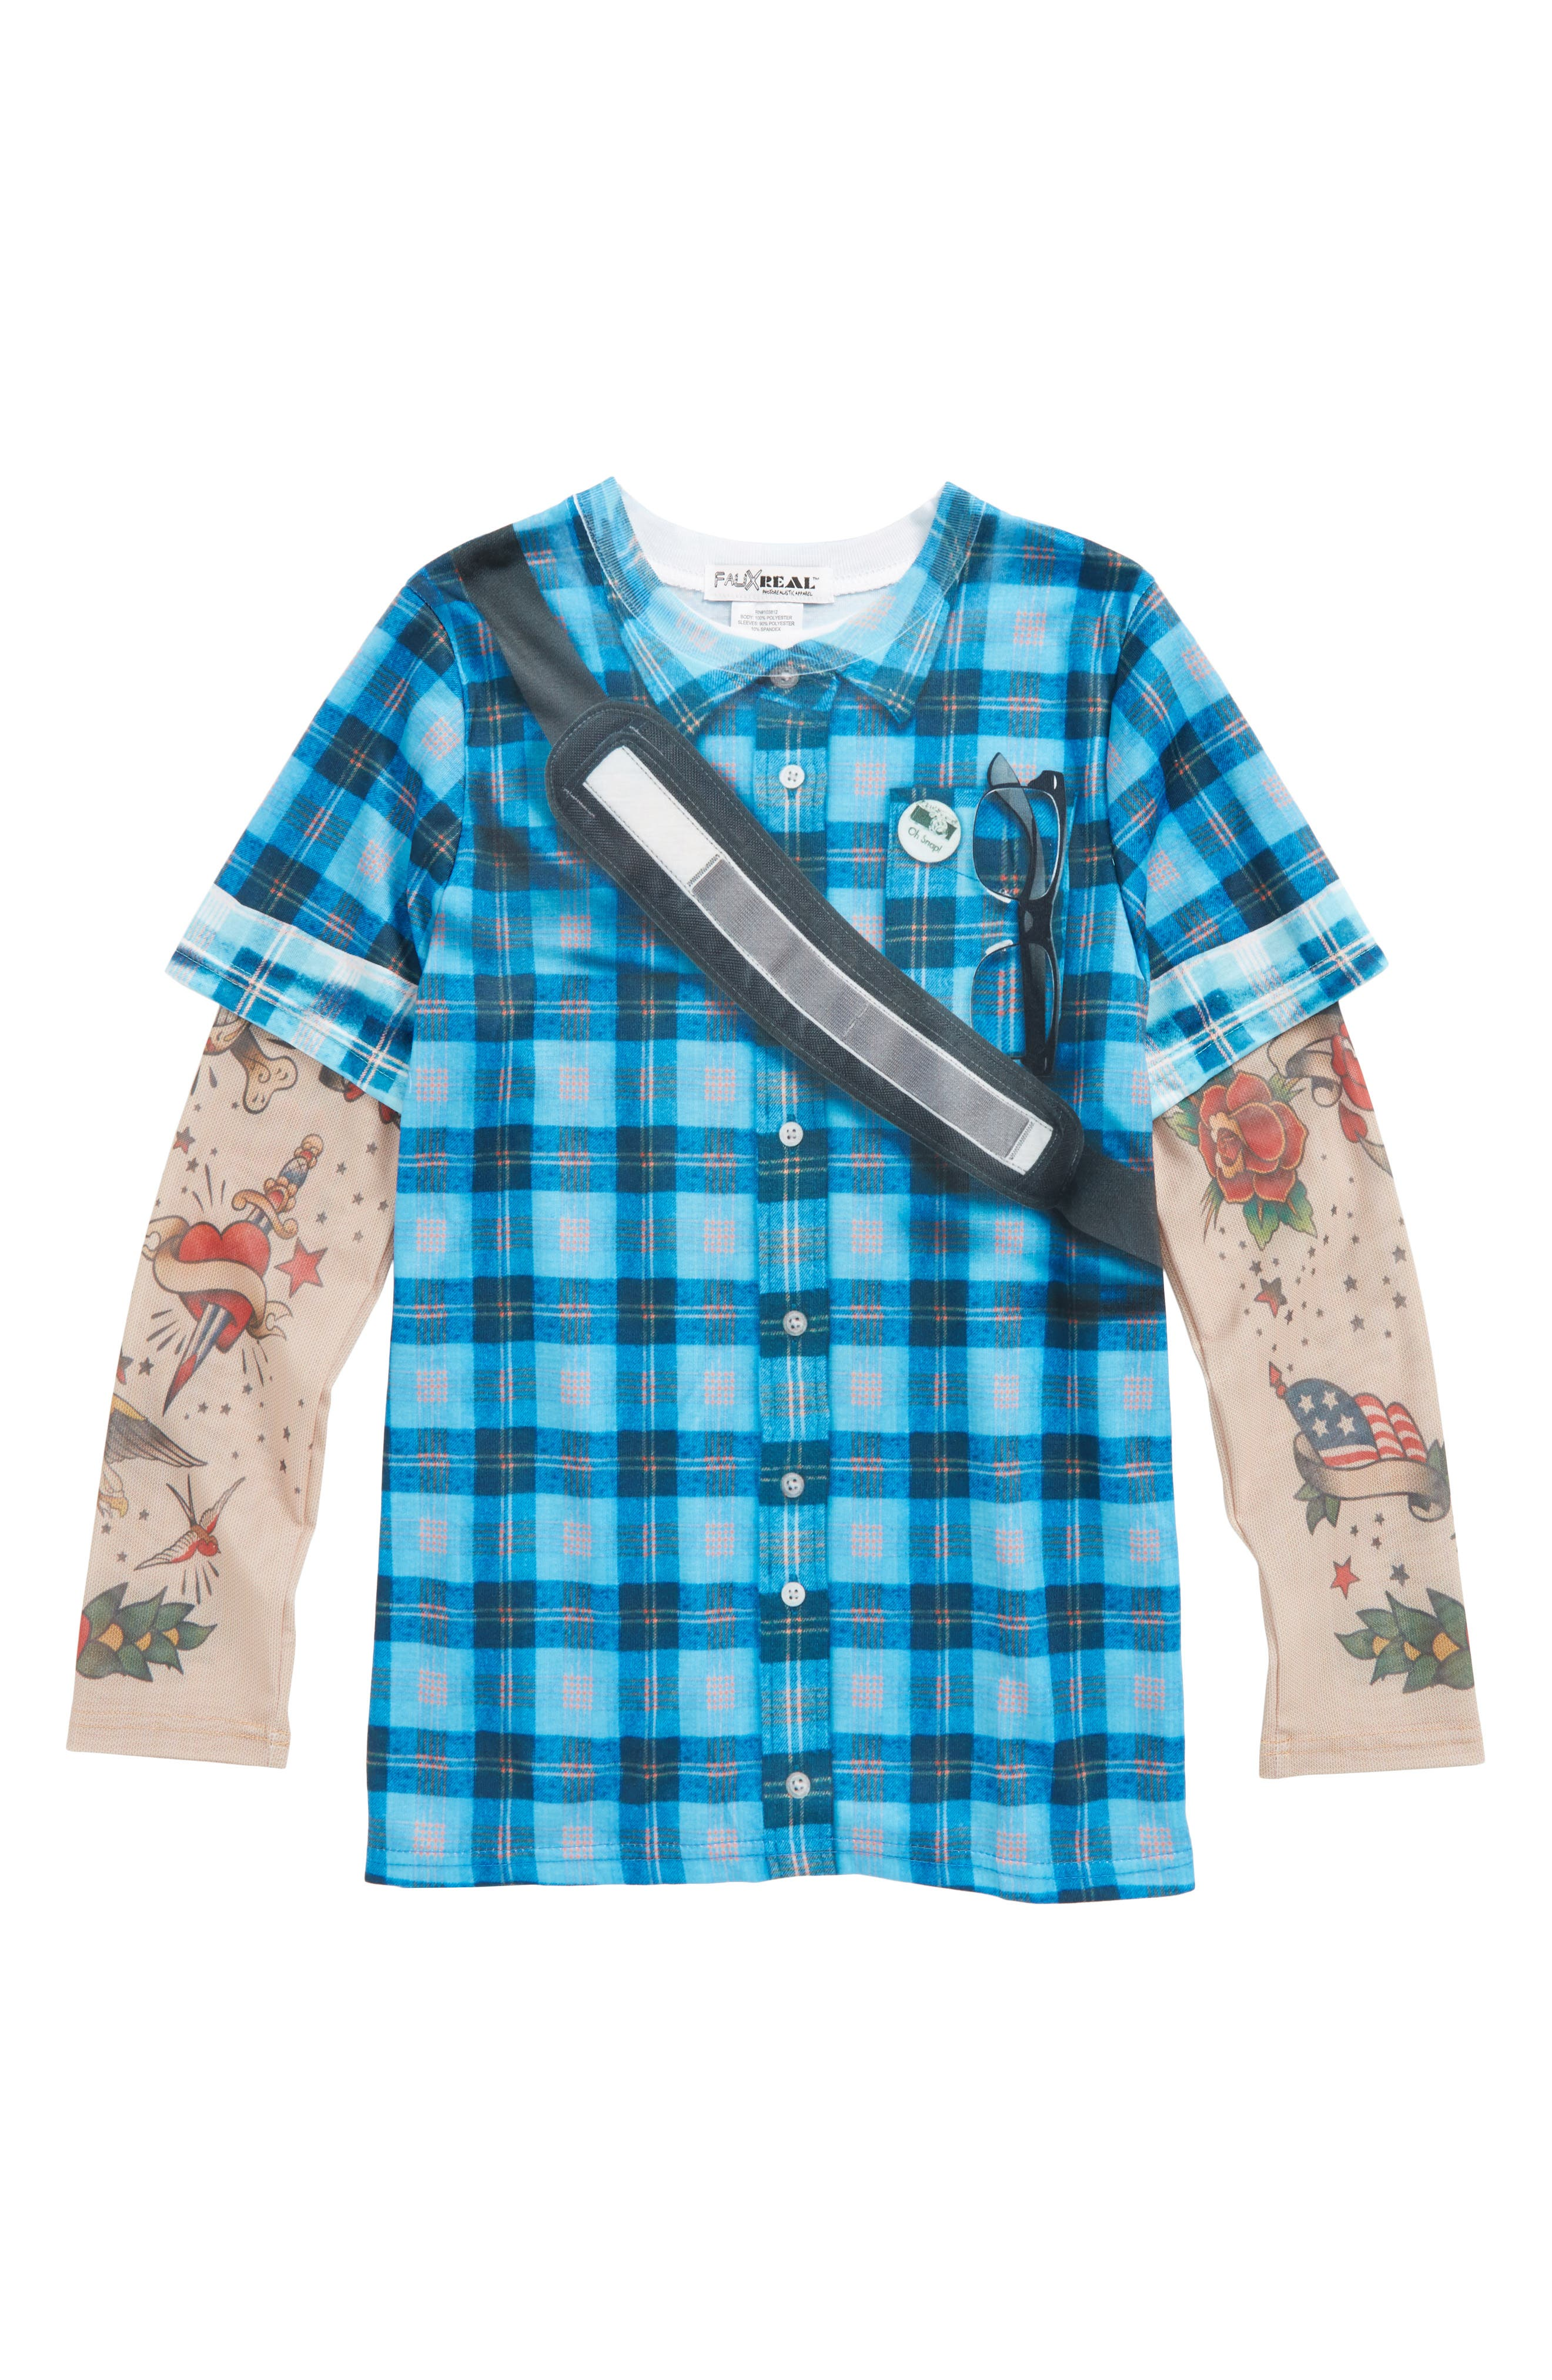 Alternate Image 1 Selected - Faux Real Hipster Messenger Bag Print Plaid T-Shirt with Tattoo Print Sleeves (Little Boys & Big Boys)